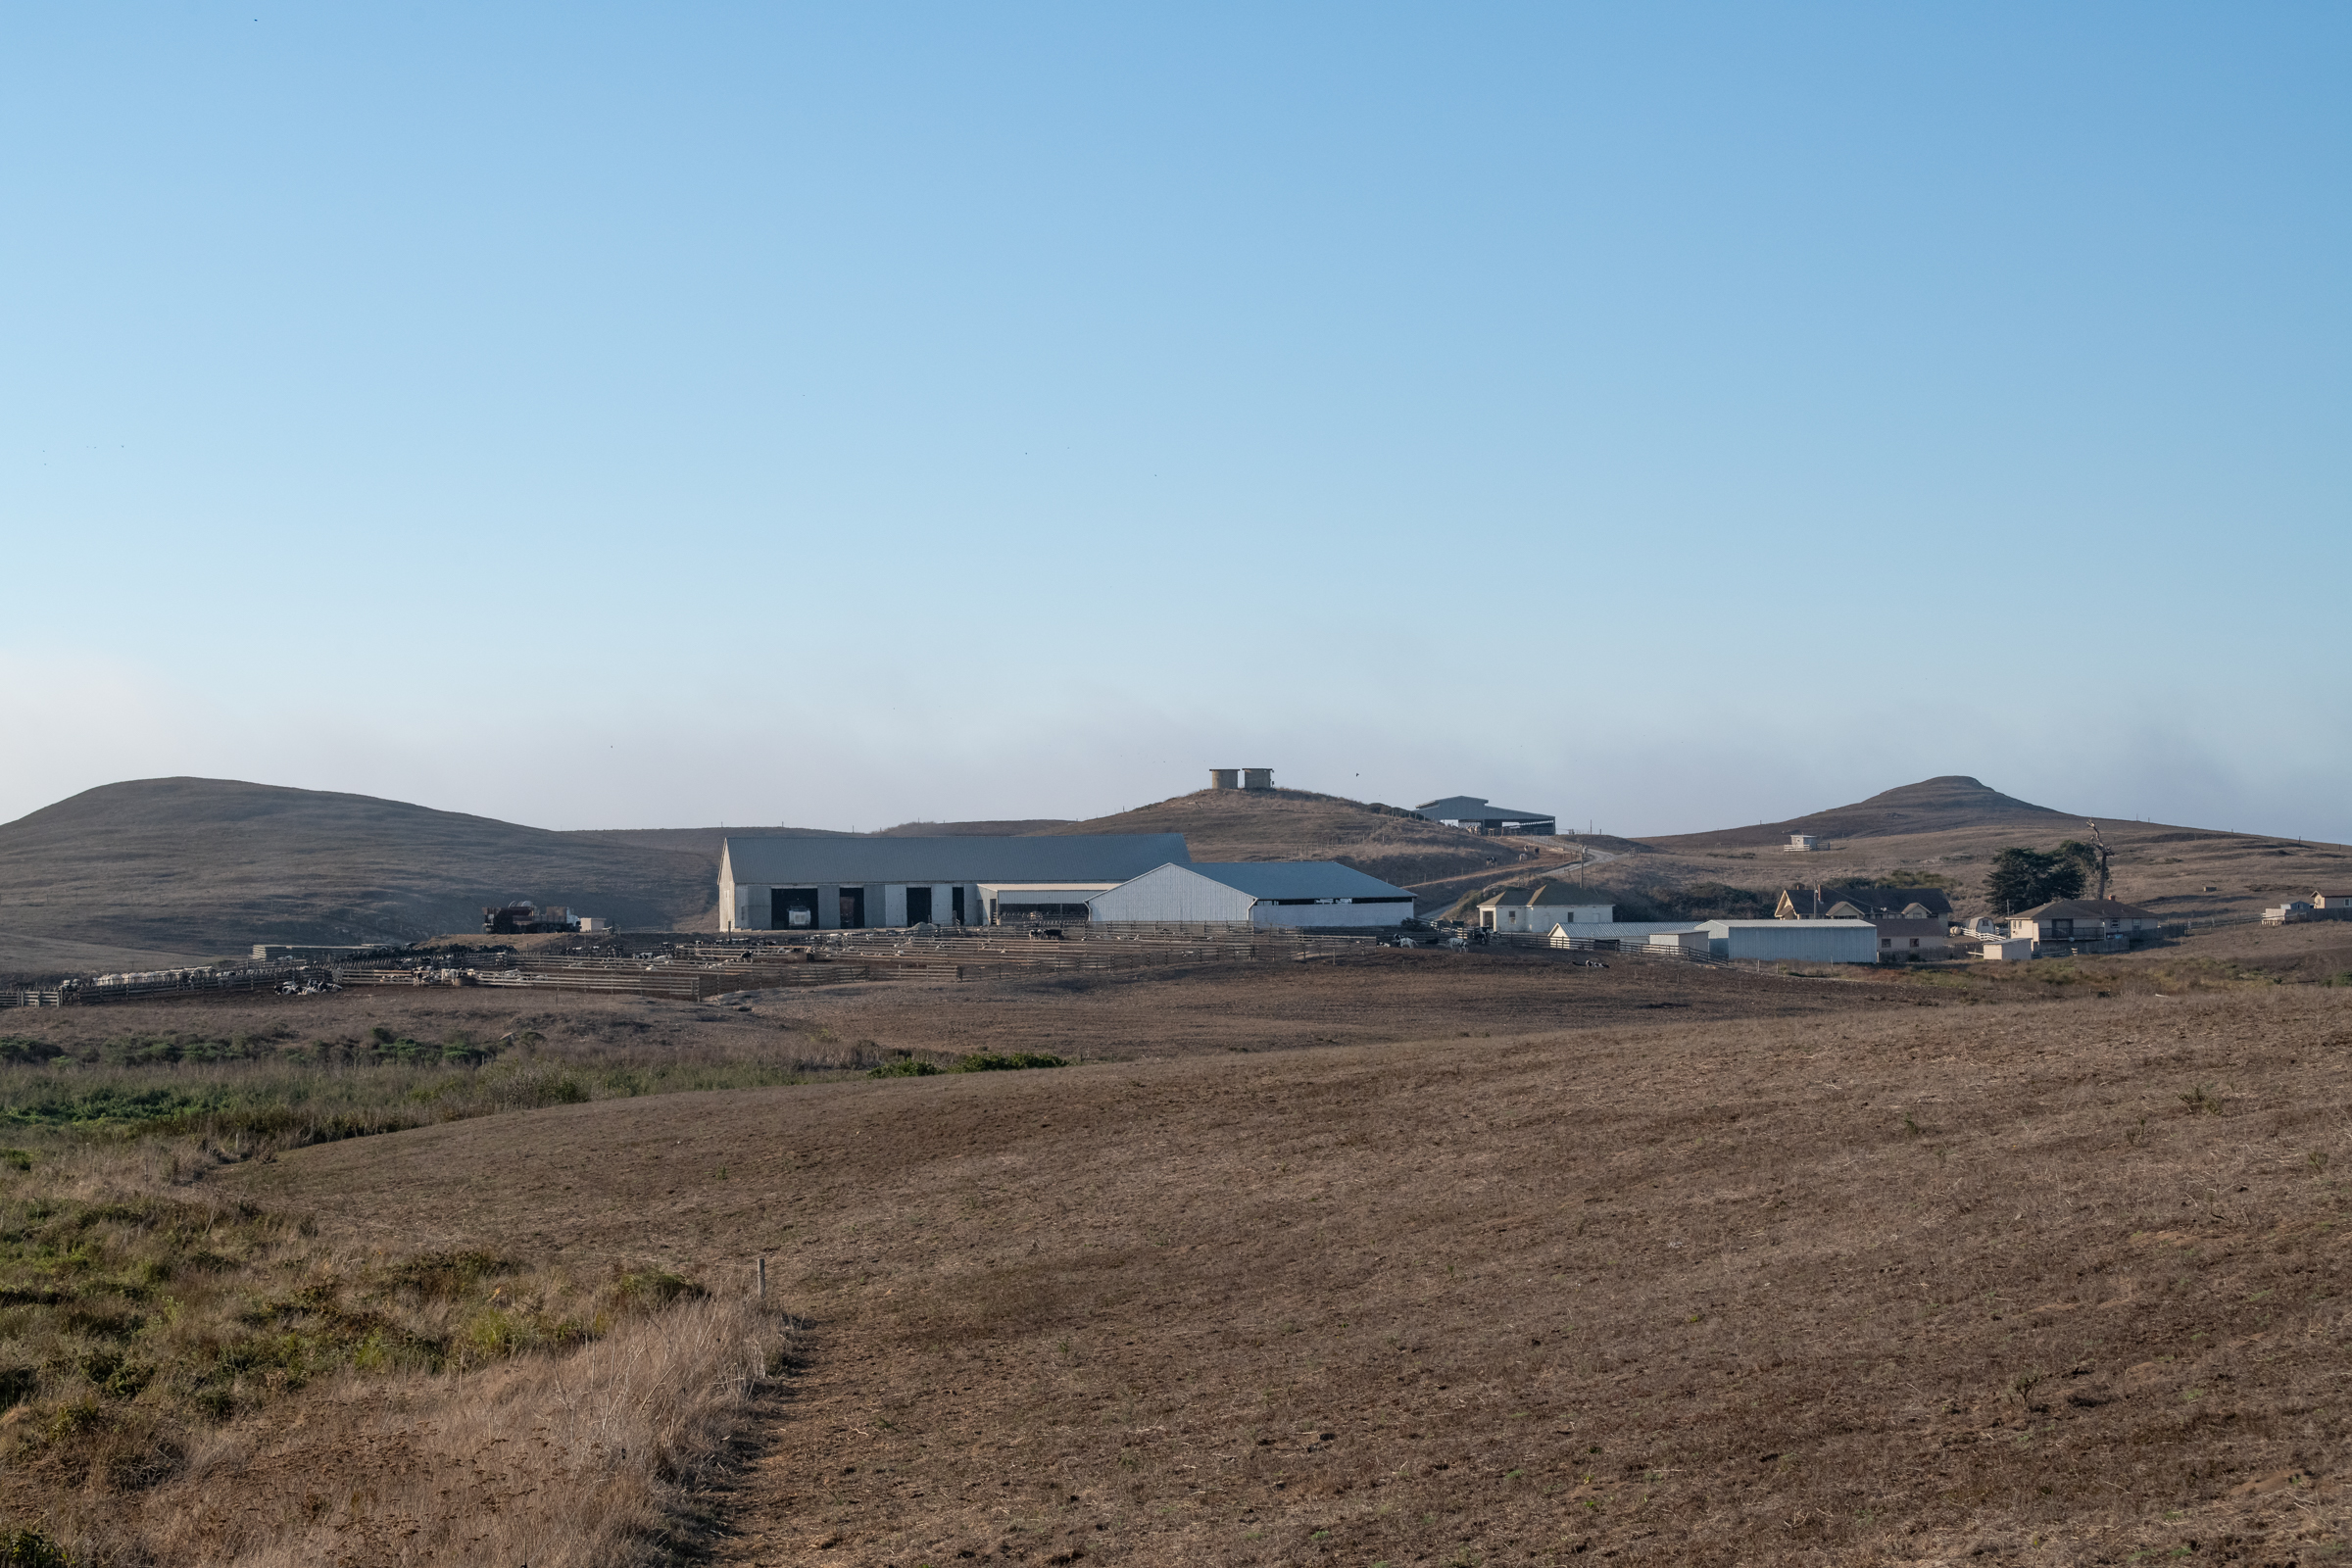 The I Ranch sits on and runs a commercial dairy operation on leased land in Point Reyes National Seashore.